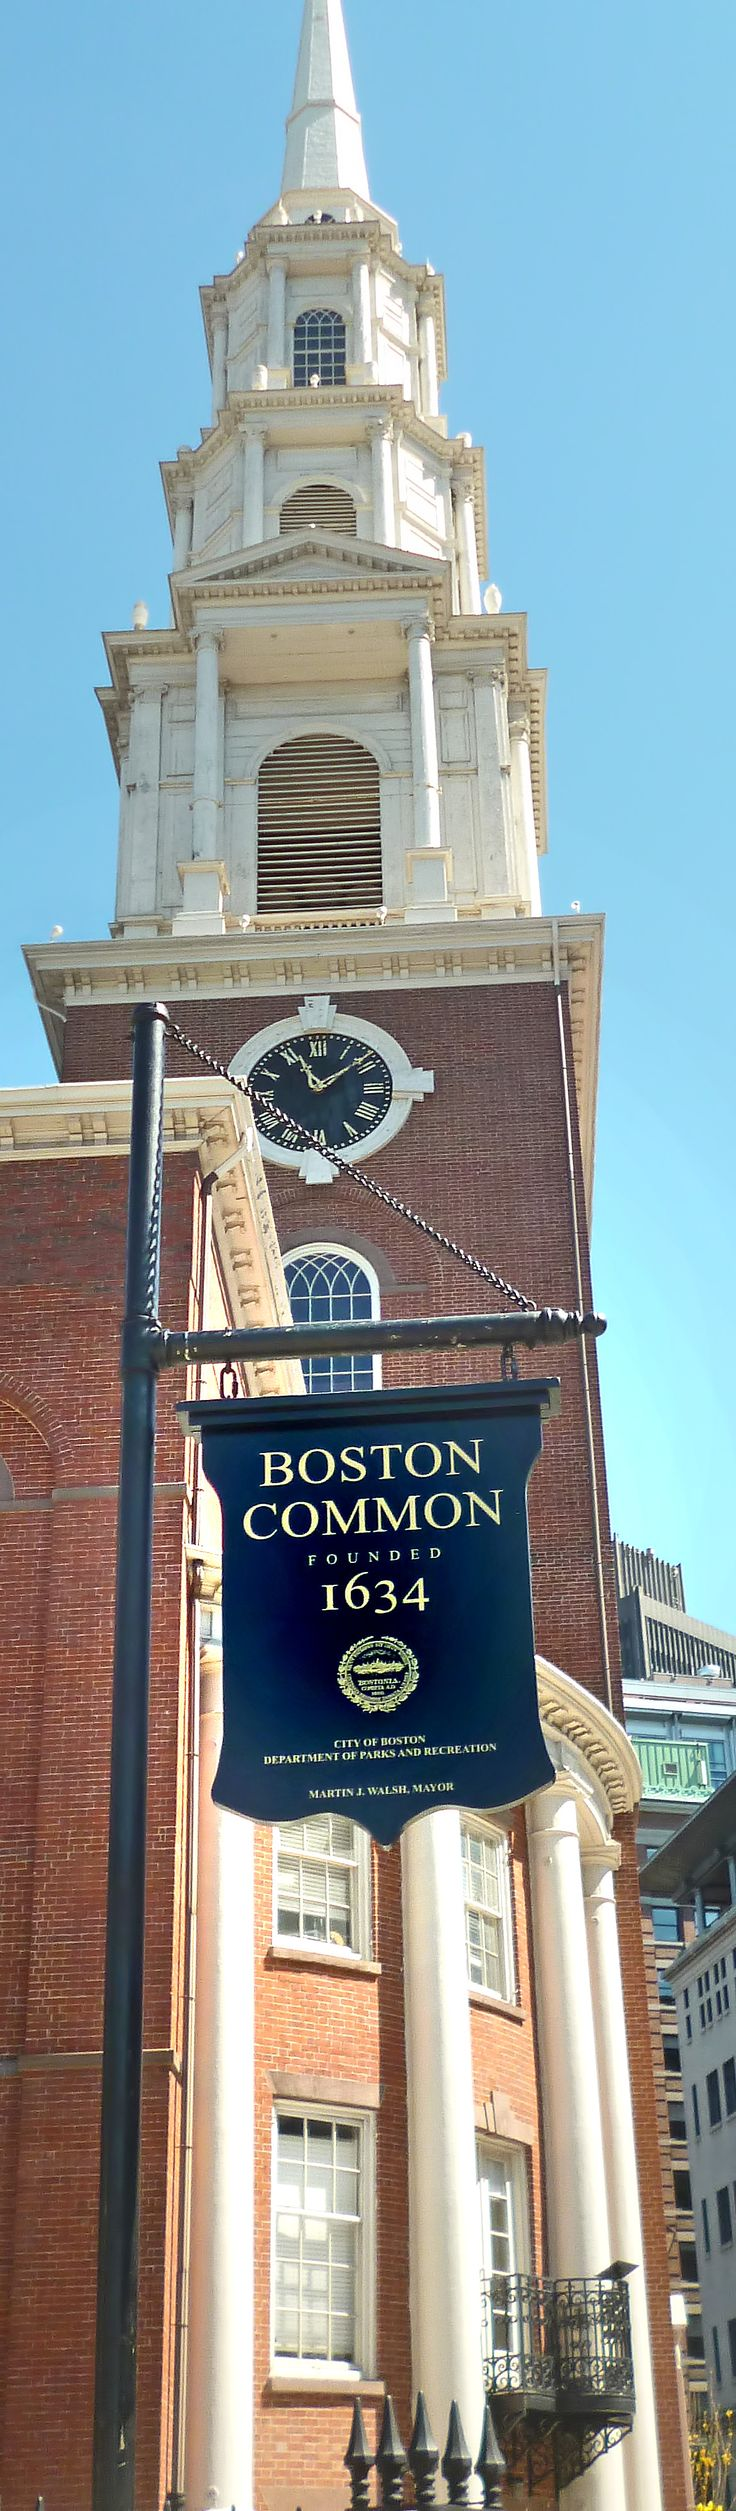 Park Street Church Was Founded In At The Corner Of Park And Tremont  Streets, Atop The Site Of Bostonu0027s Town Grain Storage Building, Or Granary.